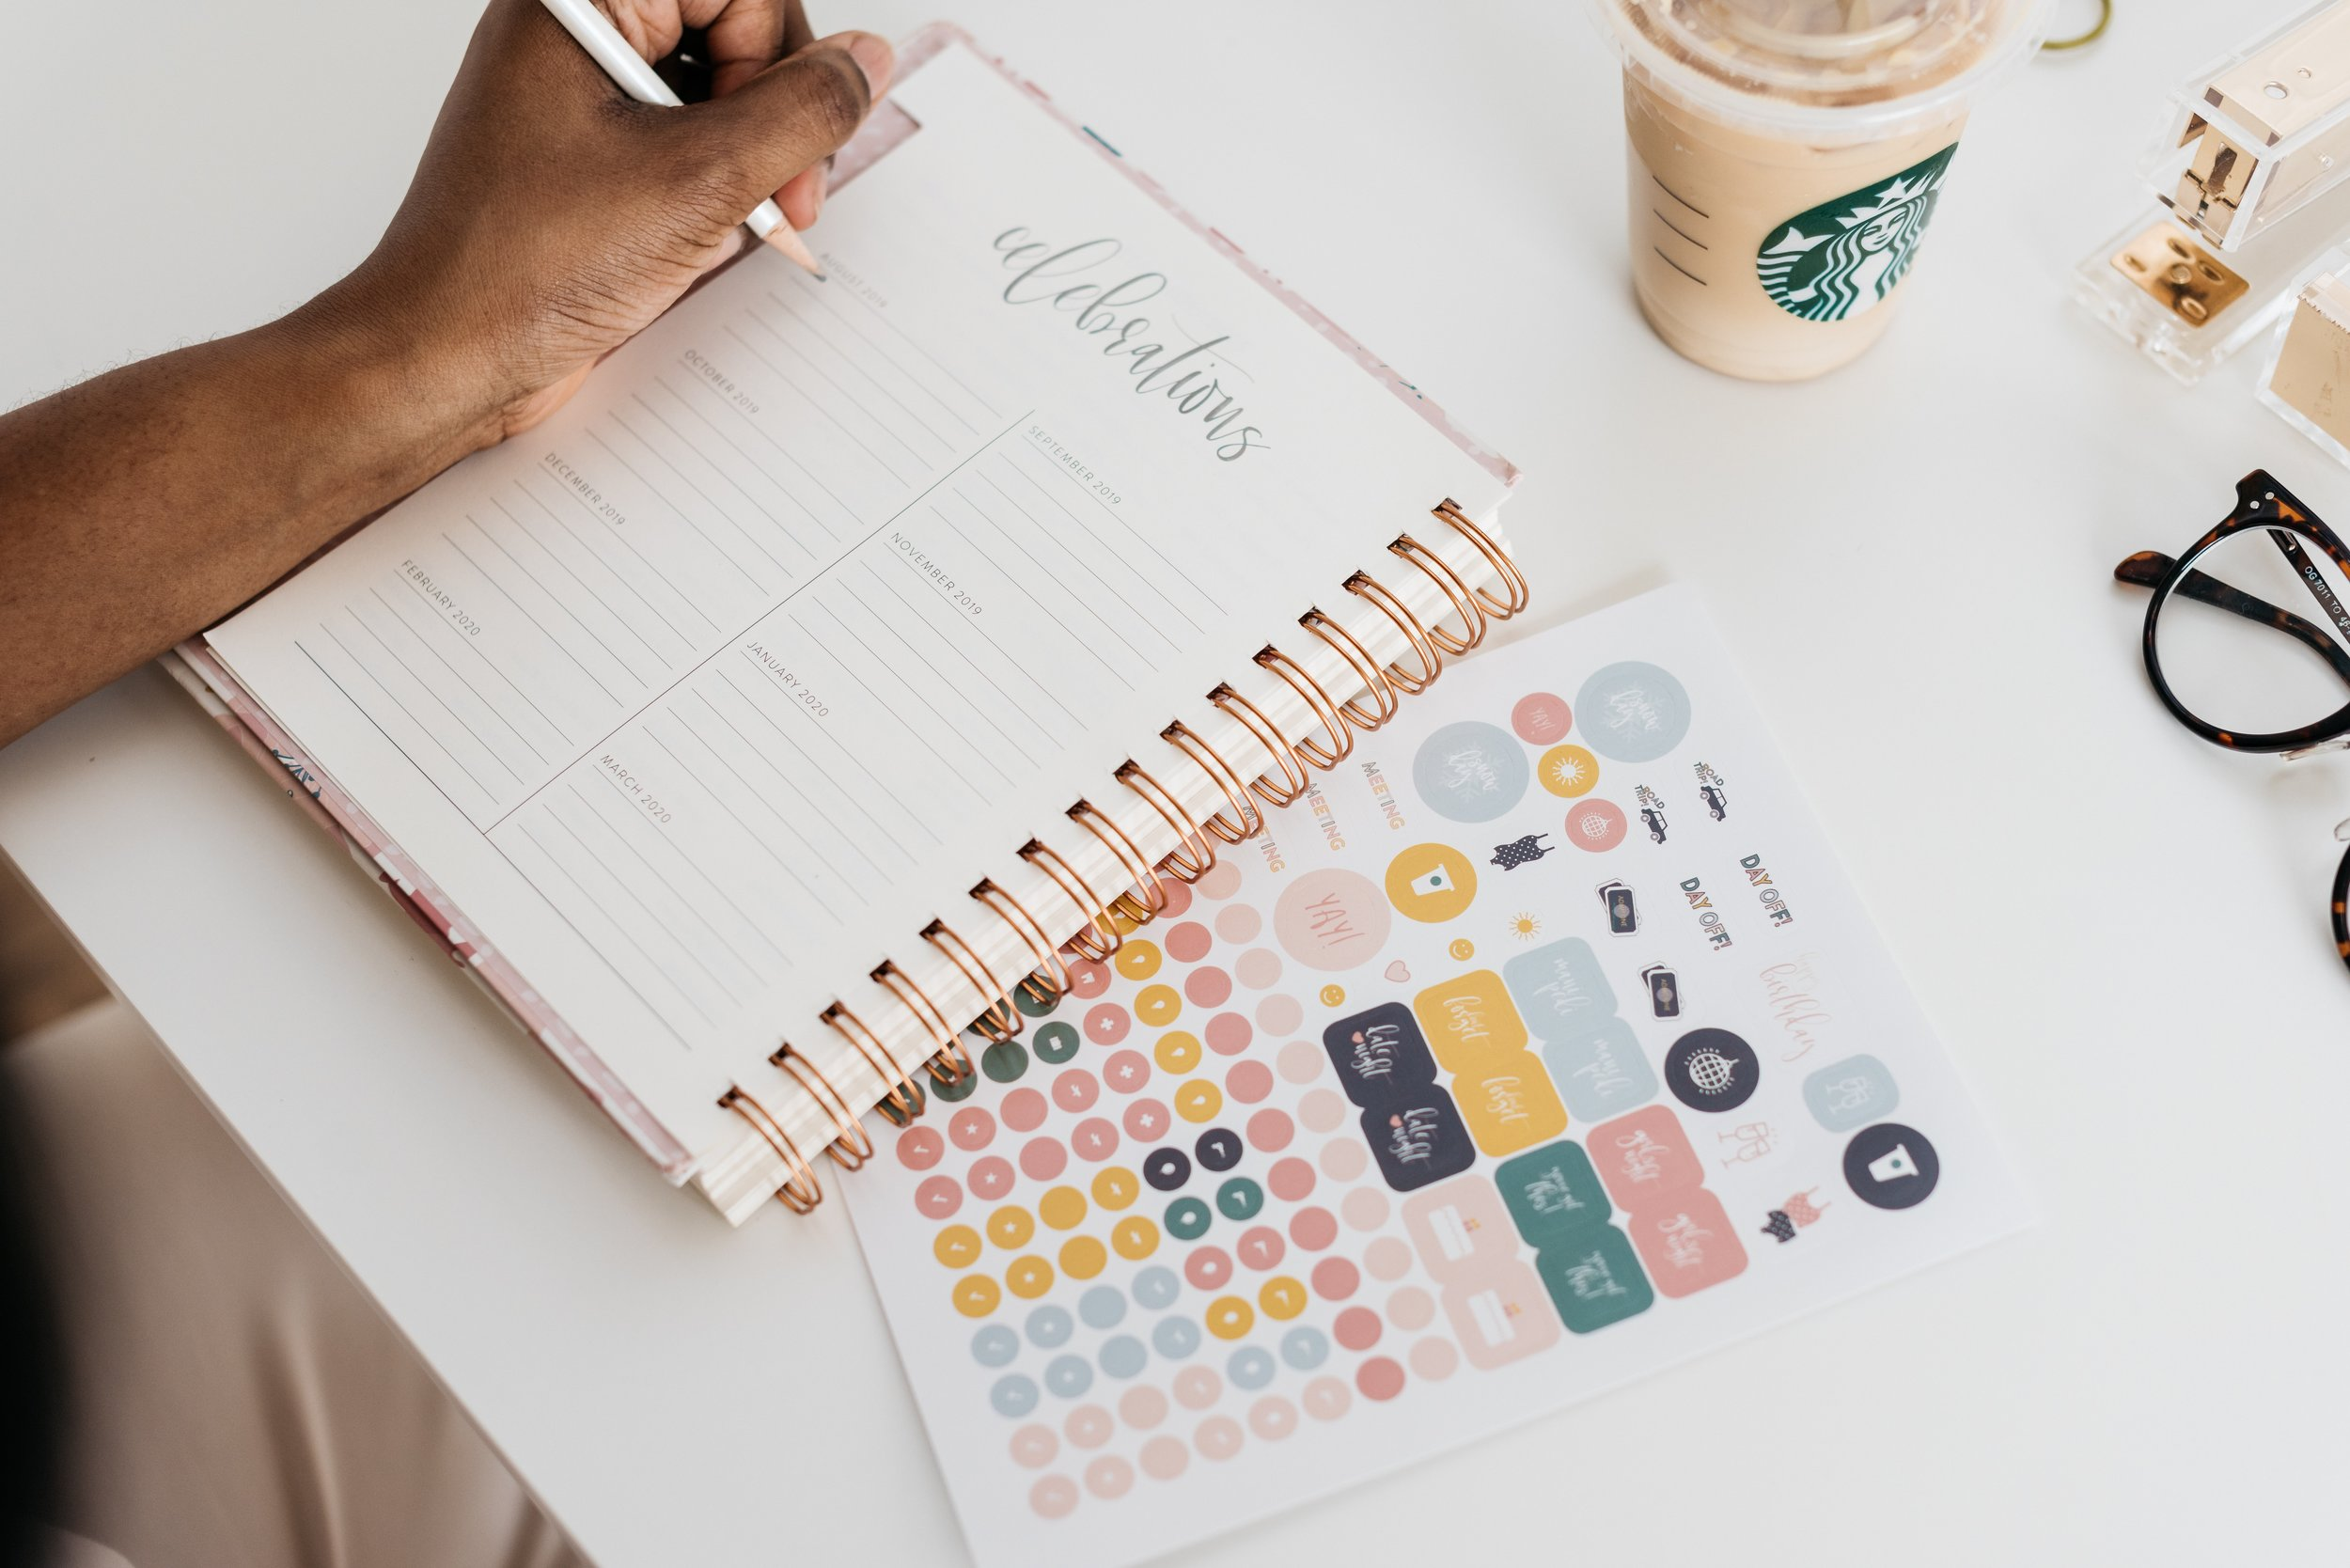 5 PLANNERS TO ORGANIZE AND PLAN YOUR LIFE FOR SUCCESS AND HAPPINESS - My life my choice